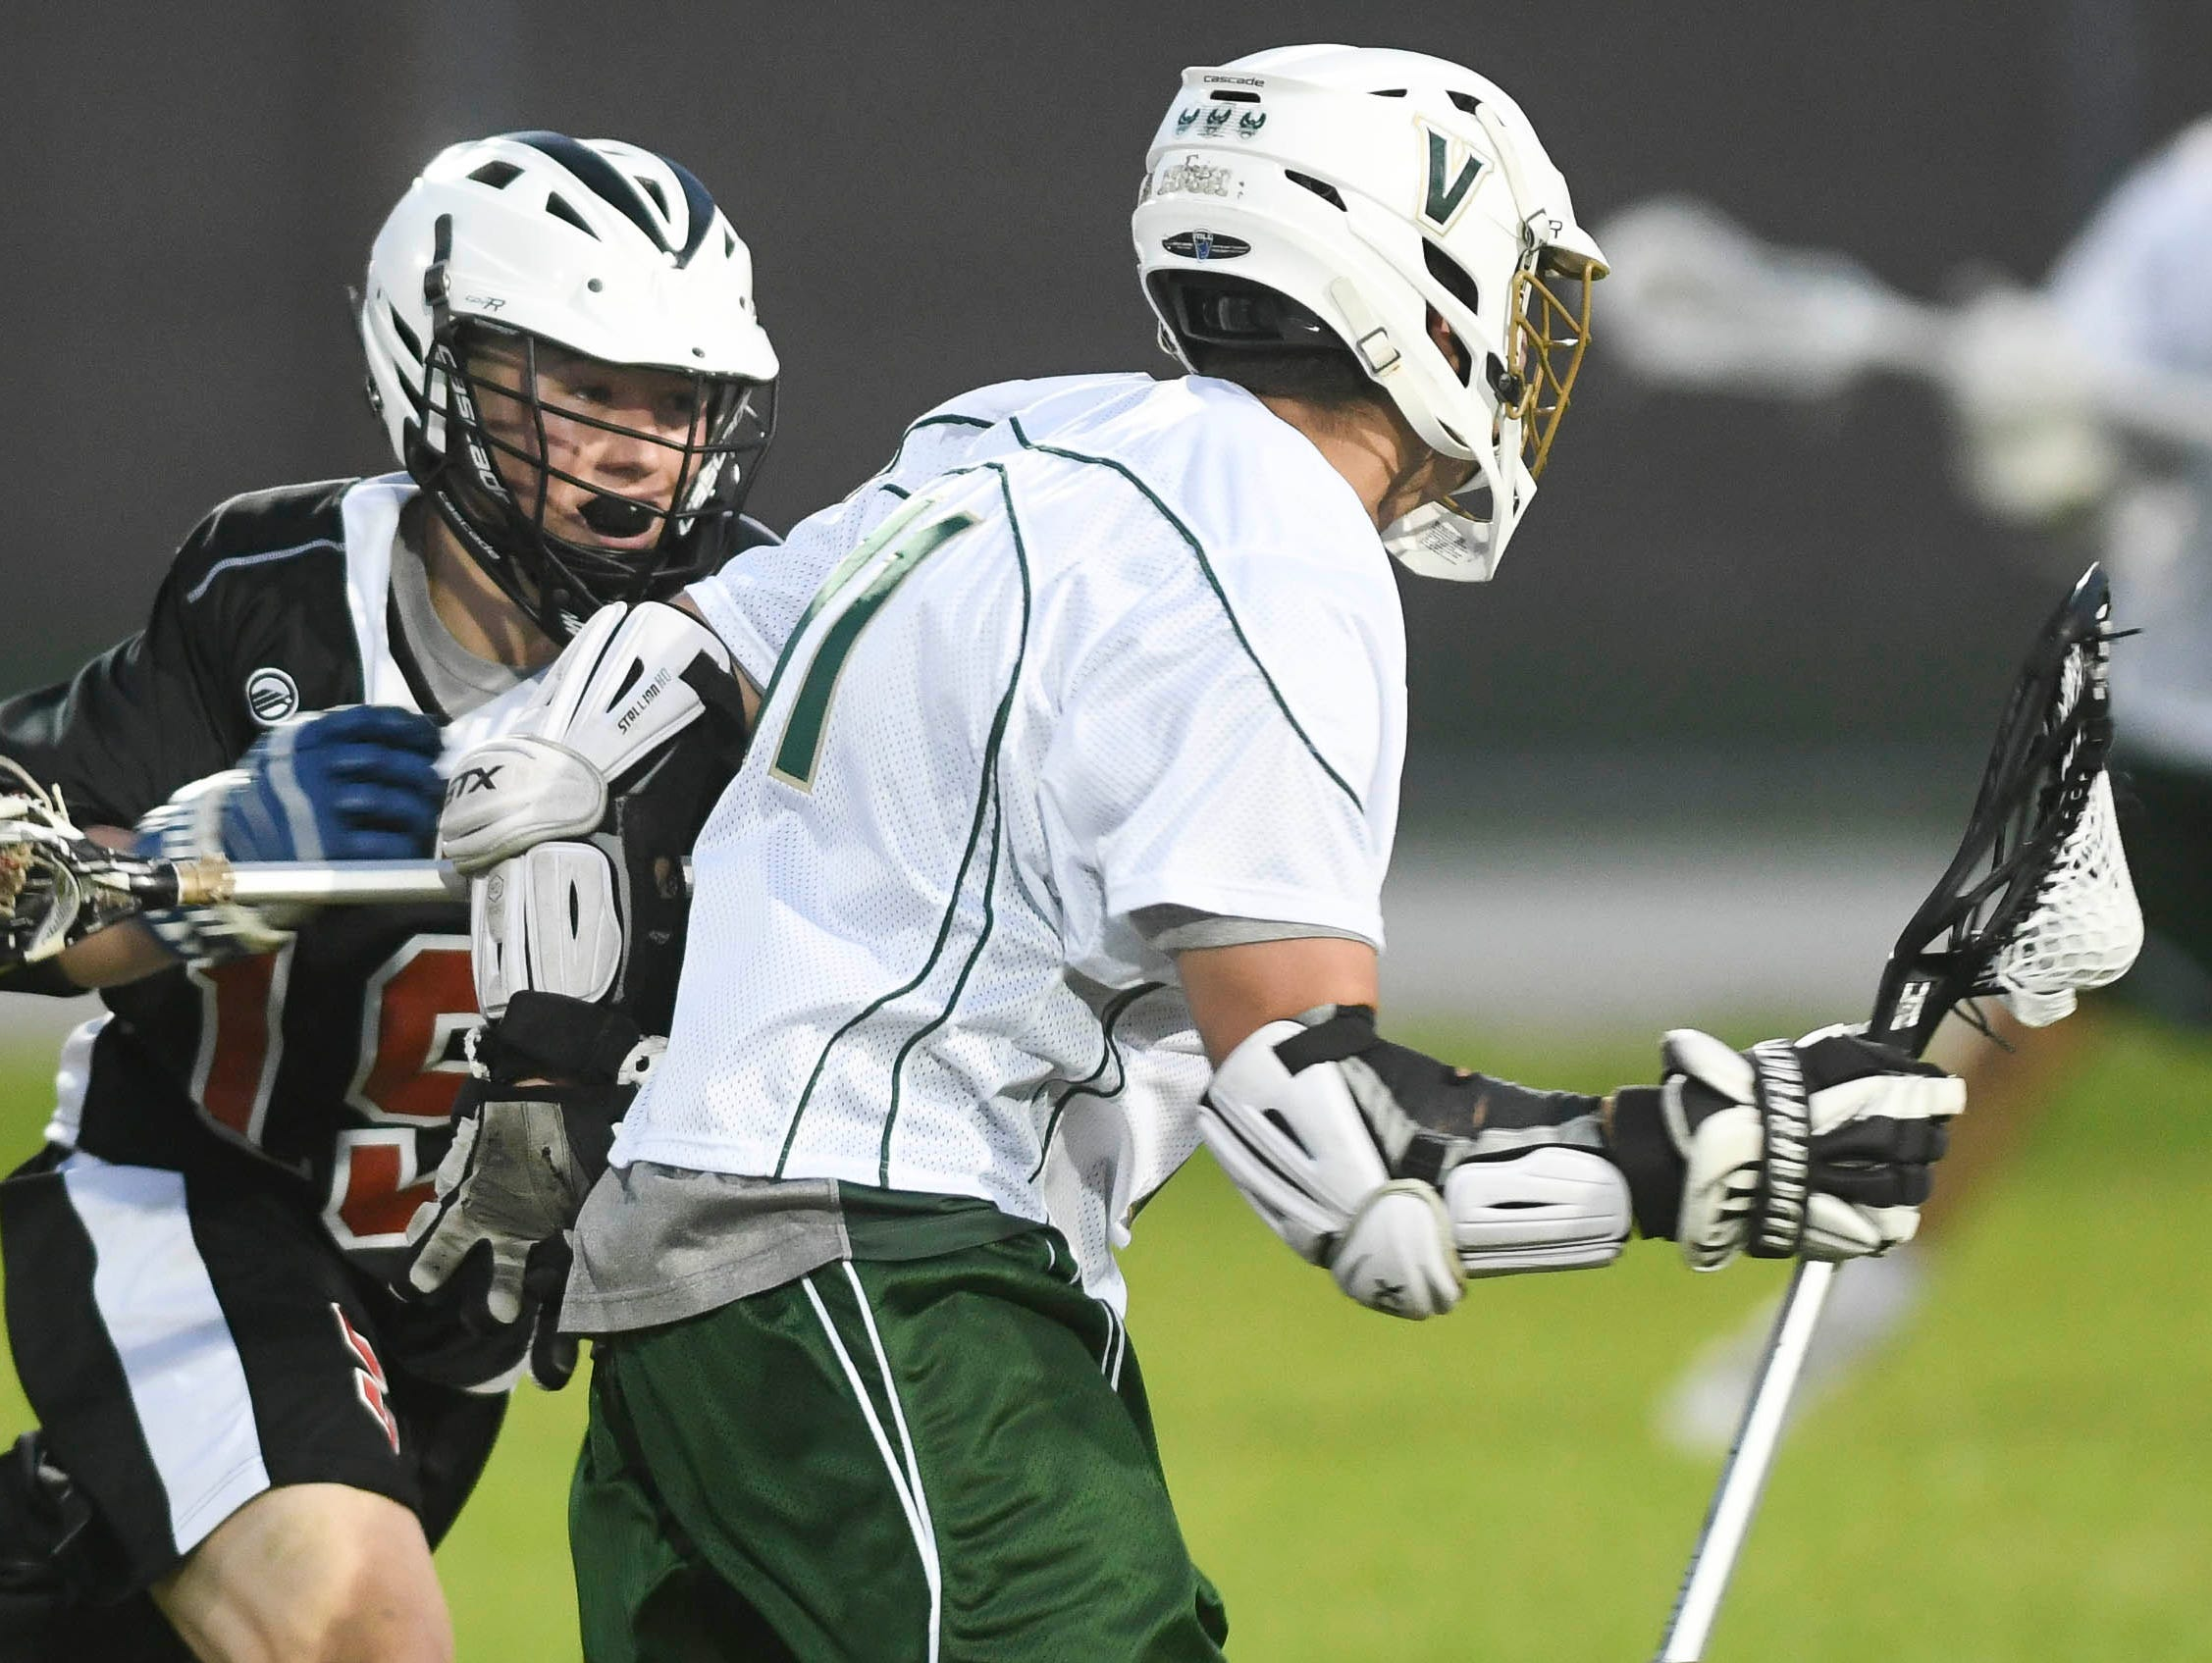 Alex Goodale of Satellite challenges Nick Rodriguez of Viera during Tuesday's game.